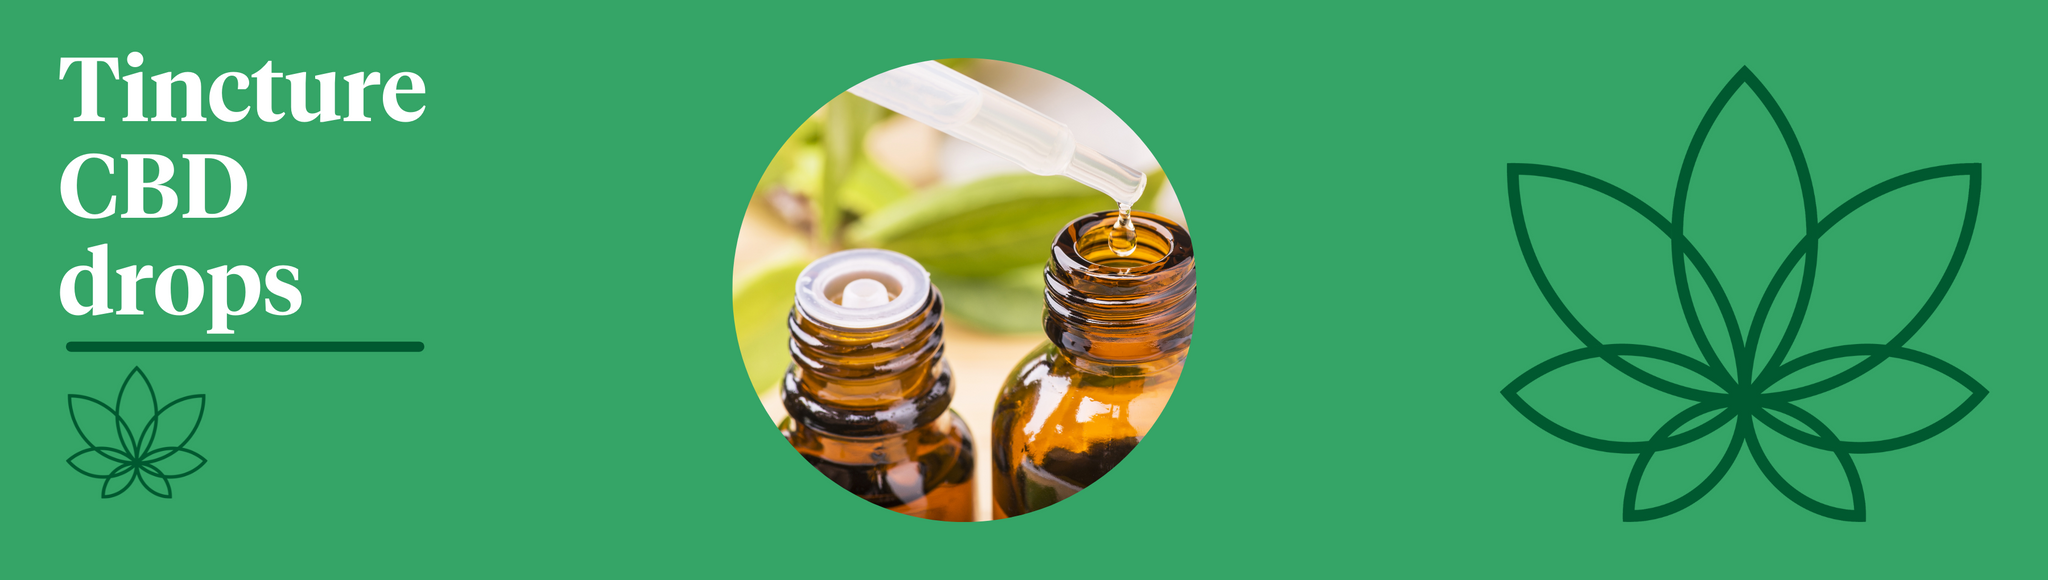 A green background with the Supreme CBD logo to the right and a tincture in the centre of the image showing tincture CBD drops